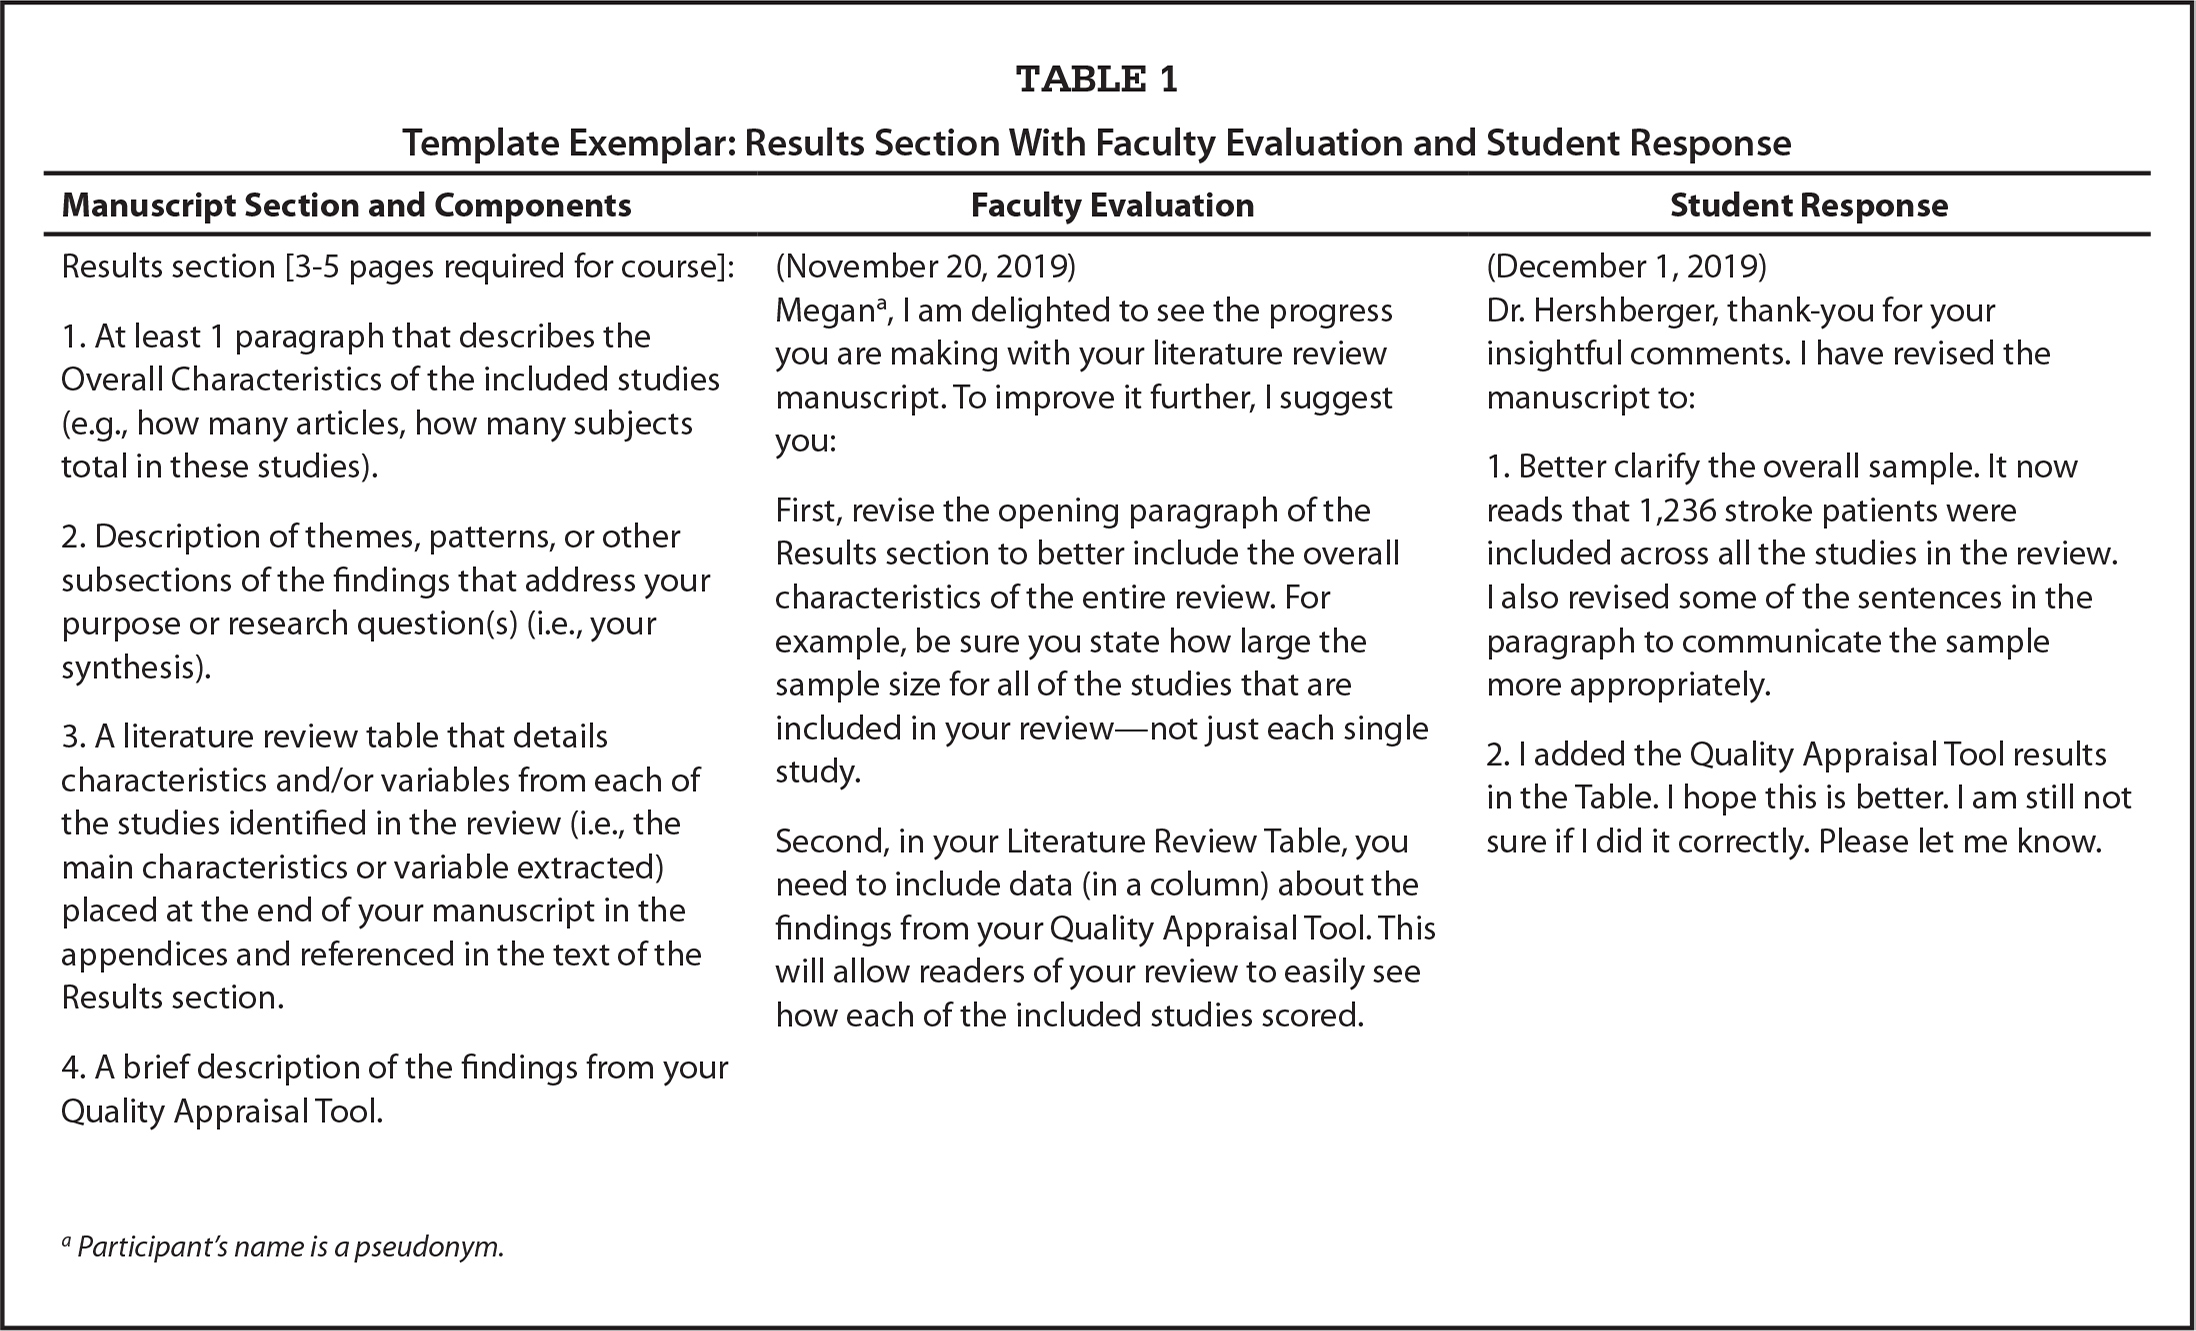 Template Exemplar: Results Section With Faculty Evaluation and Student Response